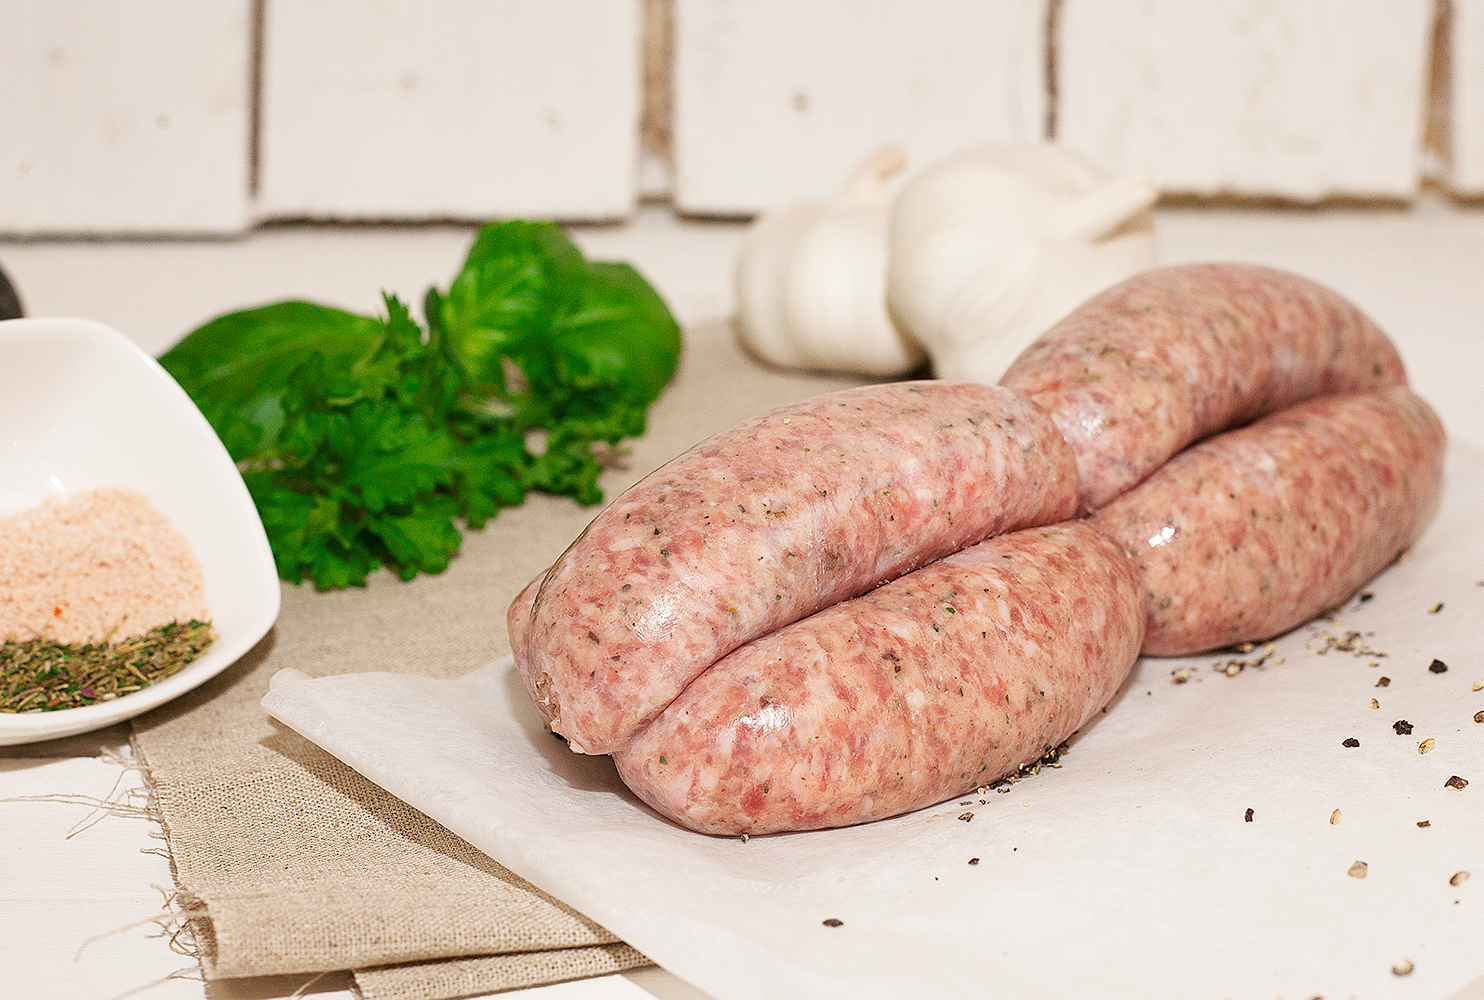 SIX NATIONS IRISH SAUSAGE MIX